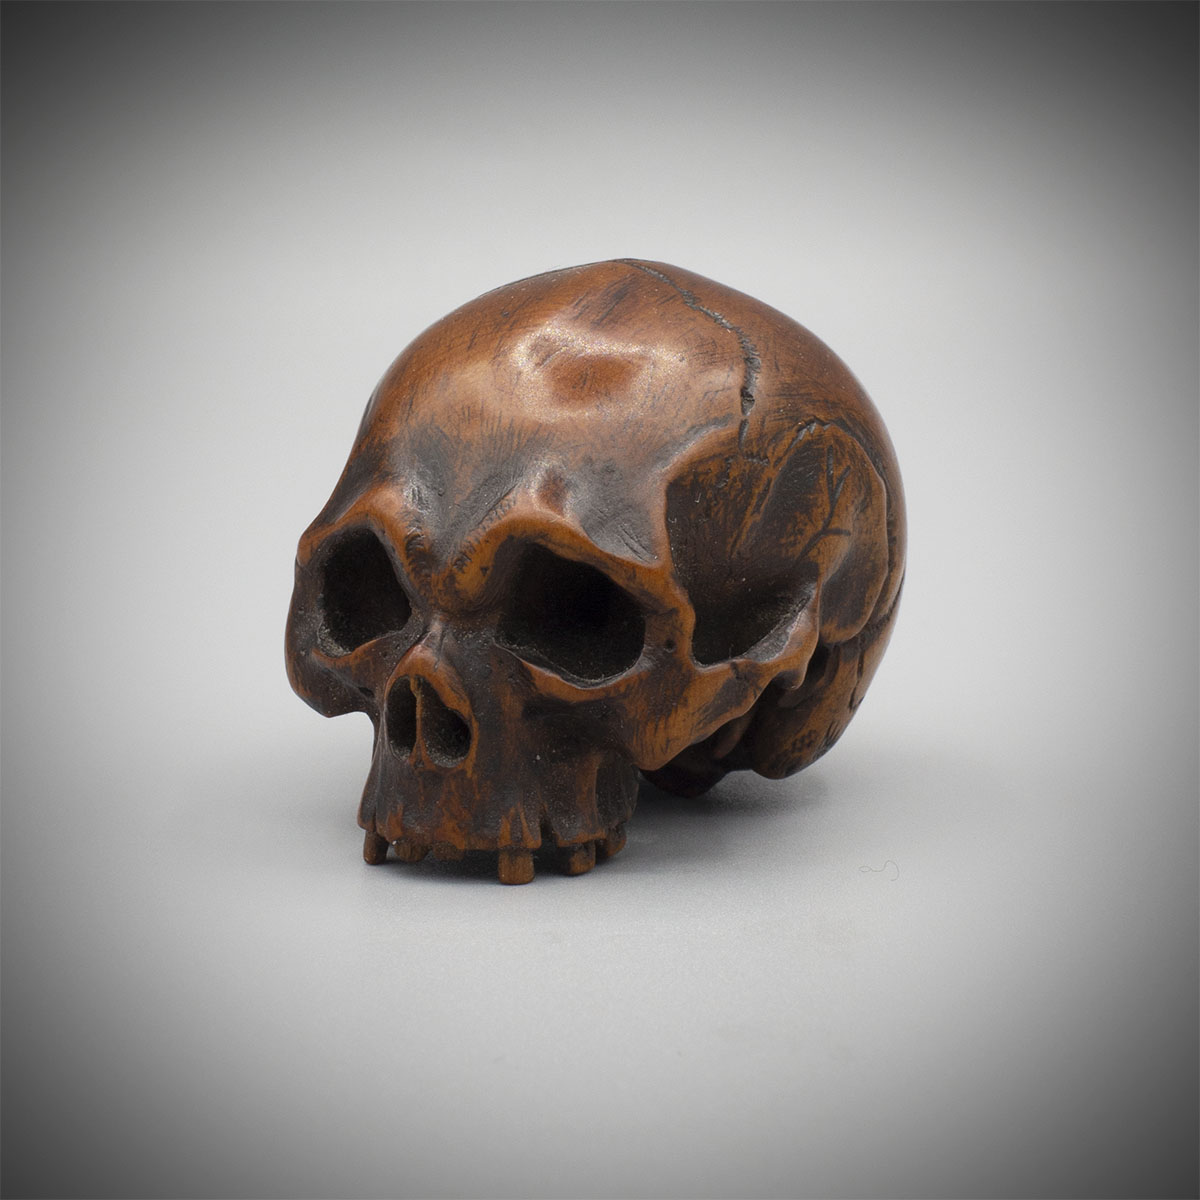 Wood Netsuke of a Skull, MR3325_v1-2